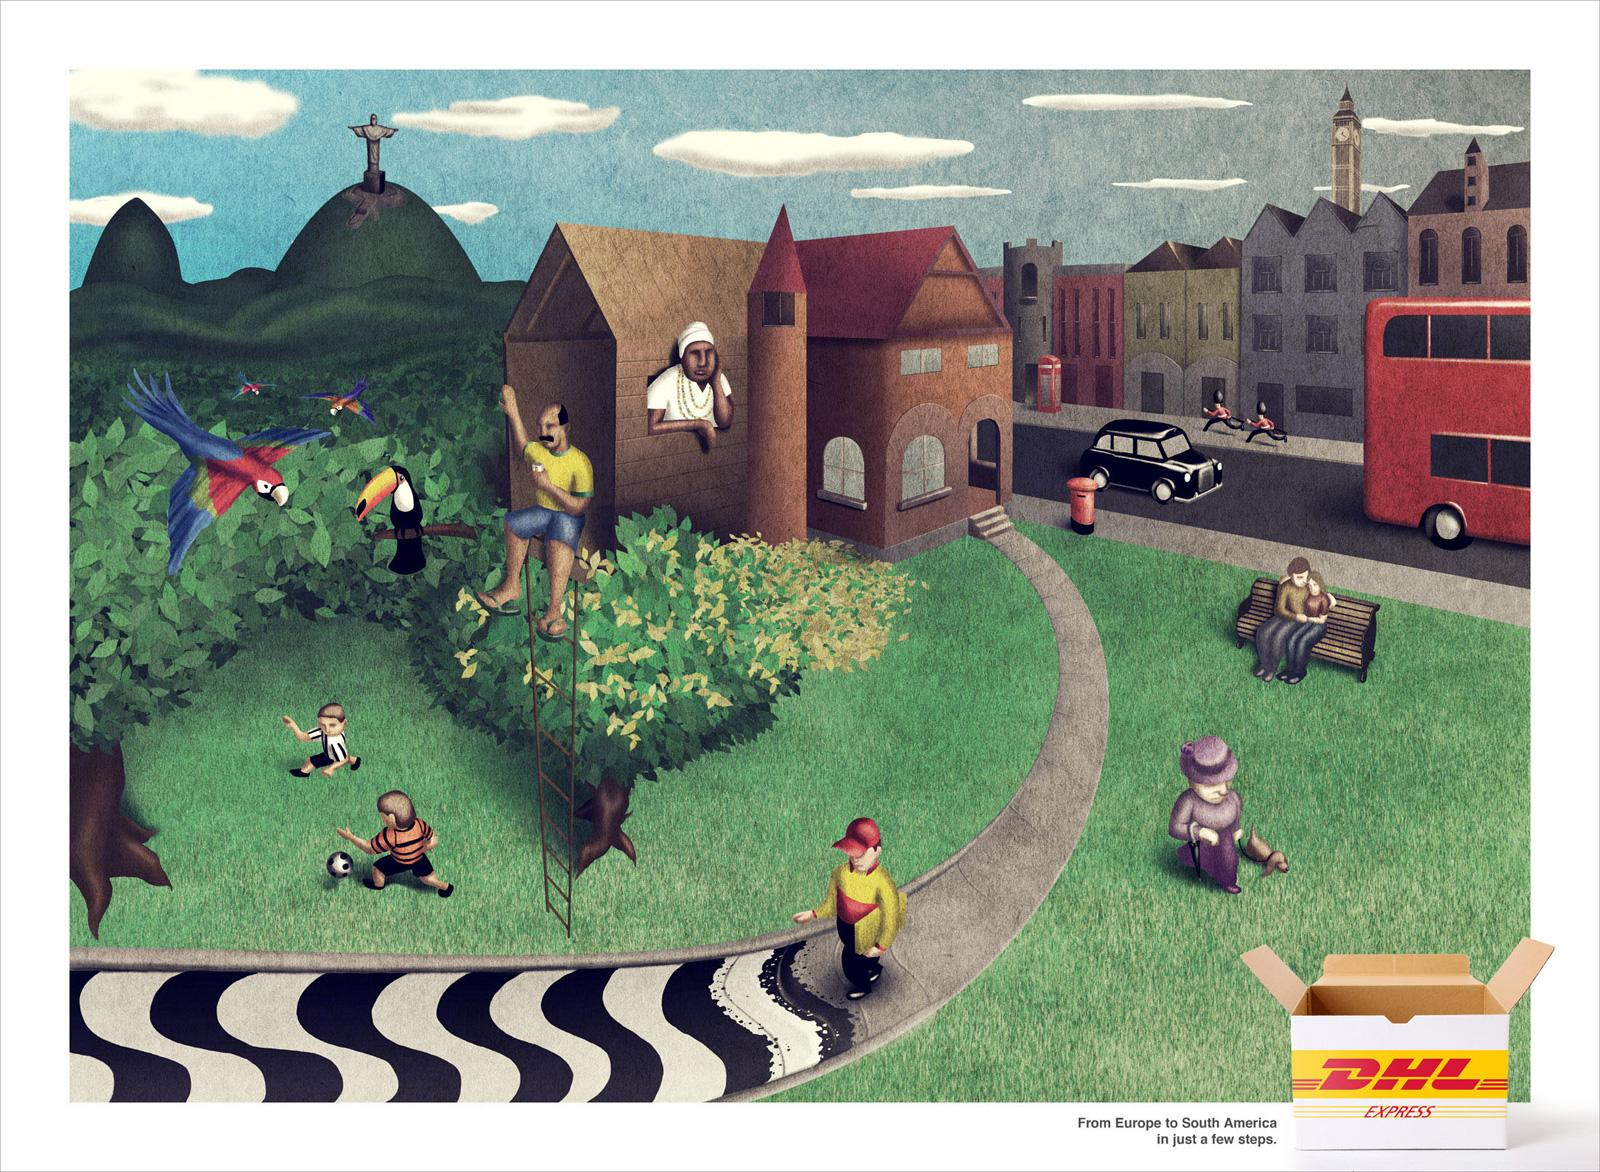 DHL Print Ad -  From Europe to South America in just a few steps